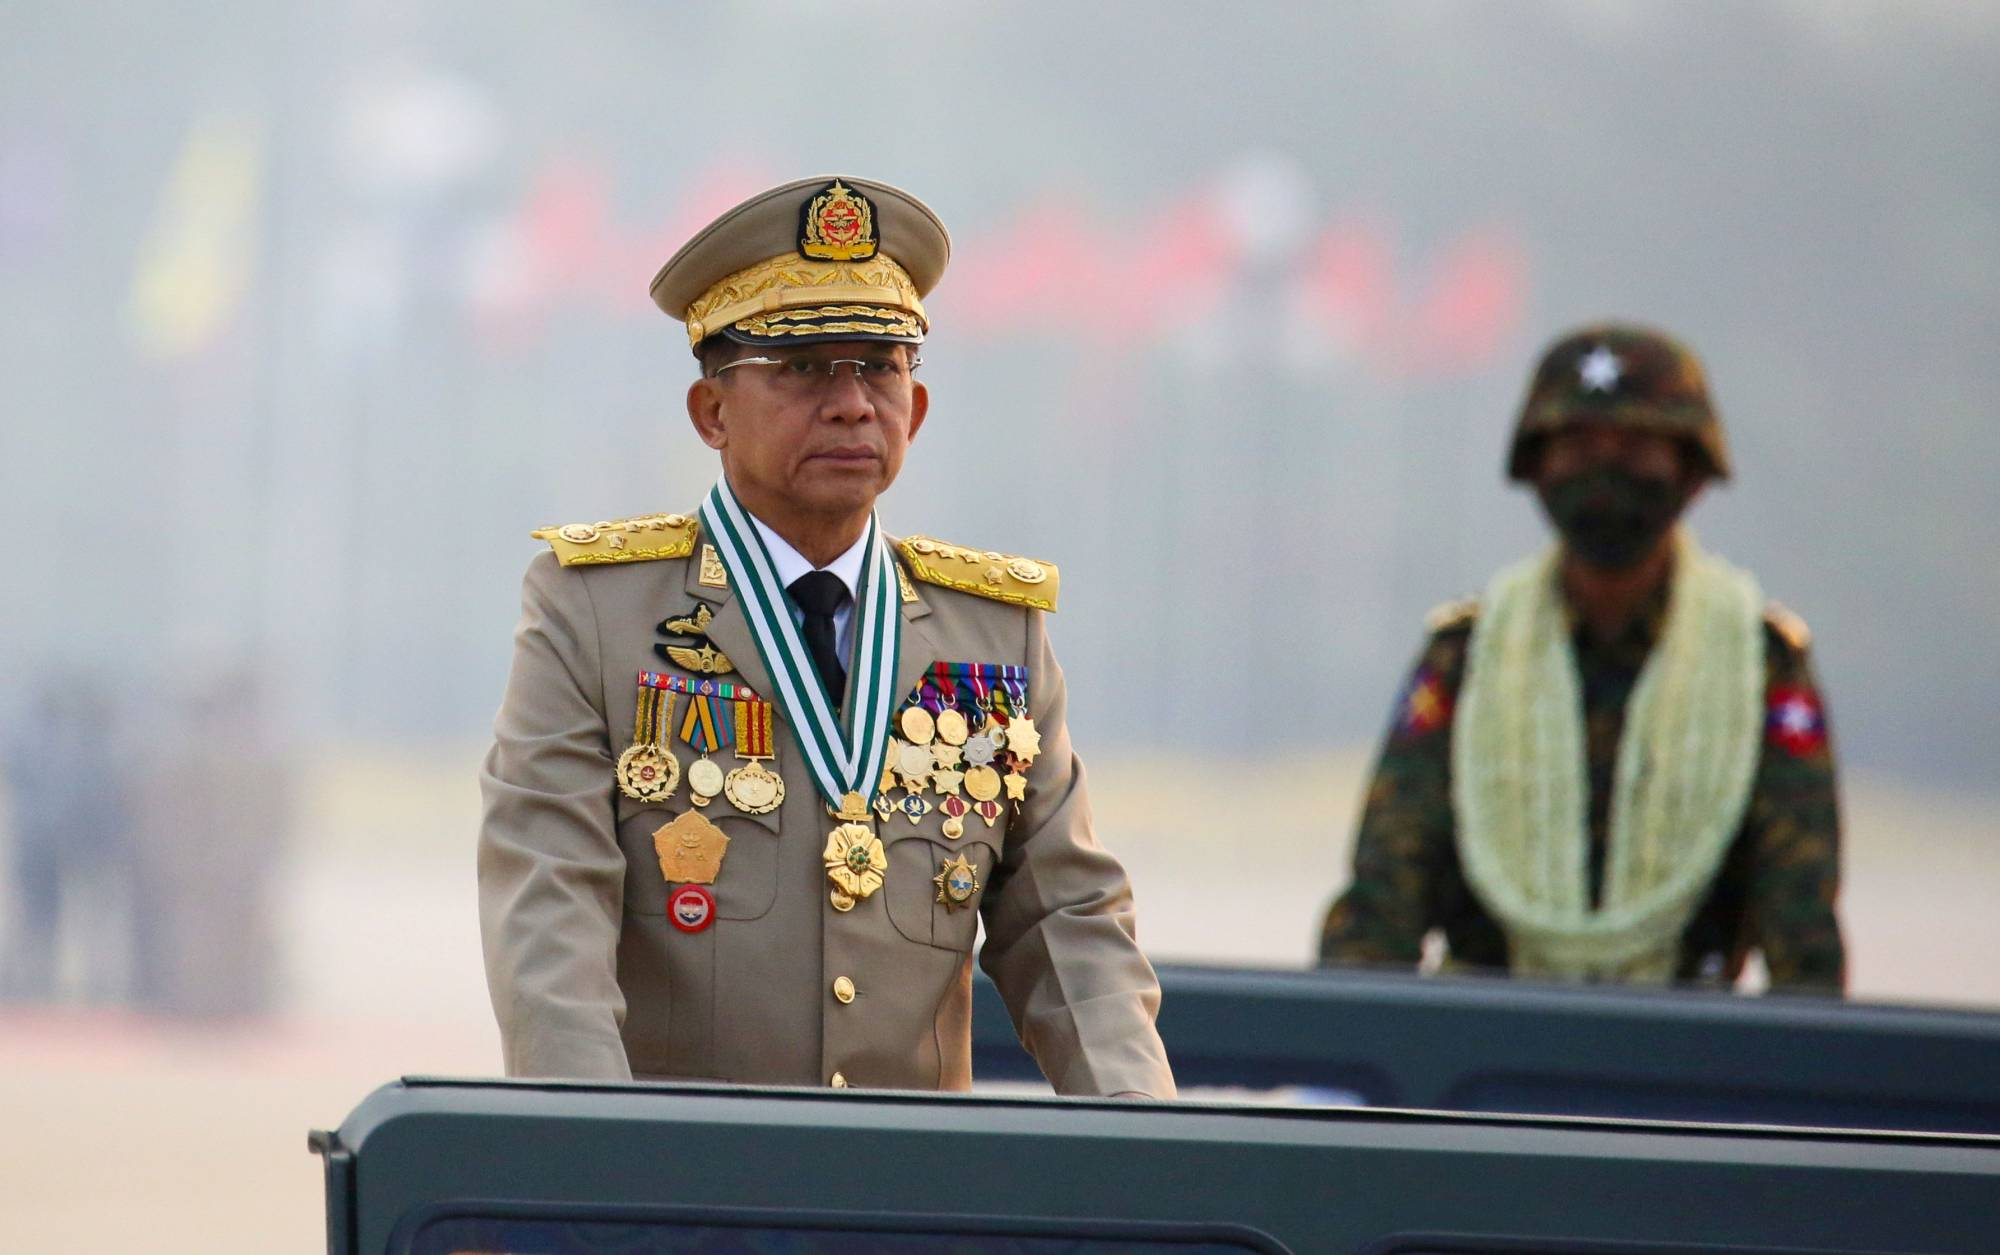 Myanmar's junta chief Gen. Min Aung Hlaing, who ousted the elected government in a coup on Feb. 1, presides over an army parade on Armed Forces Day in Naypyitaw, Myanmar, in March.  | REUTERS